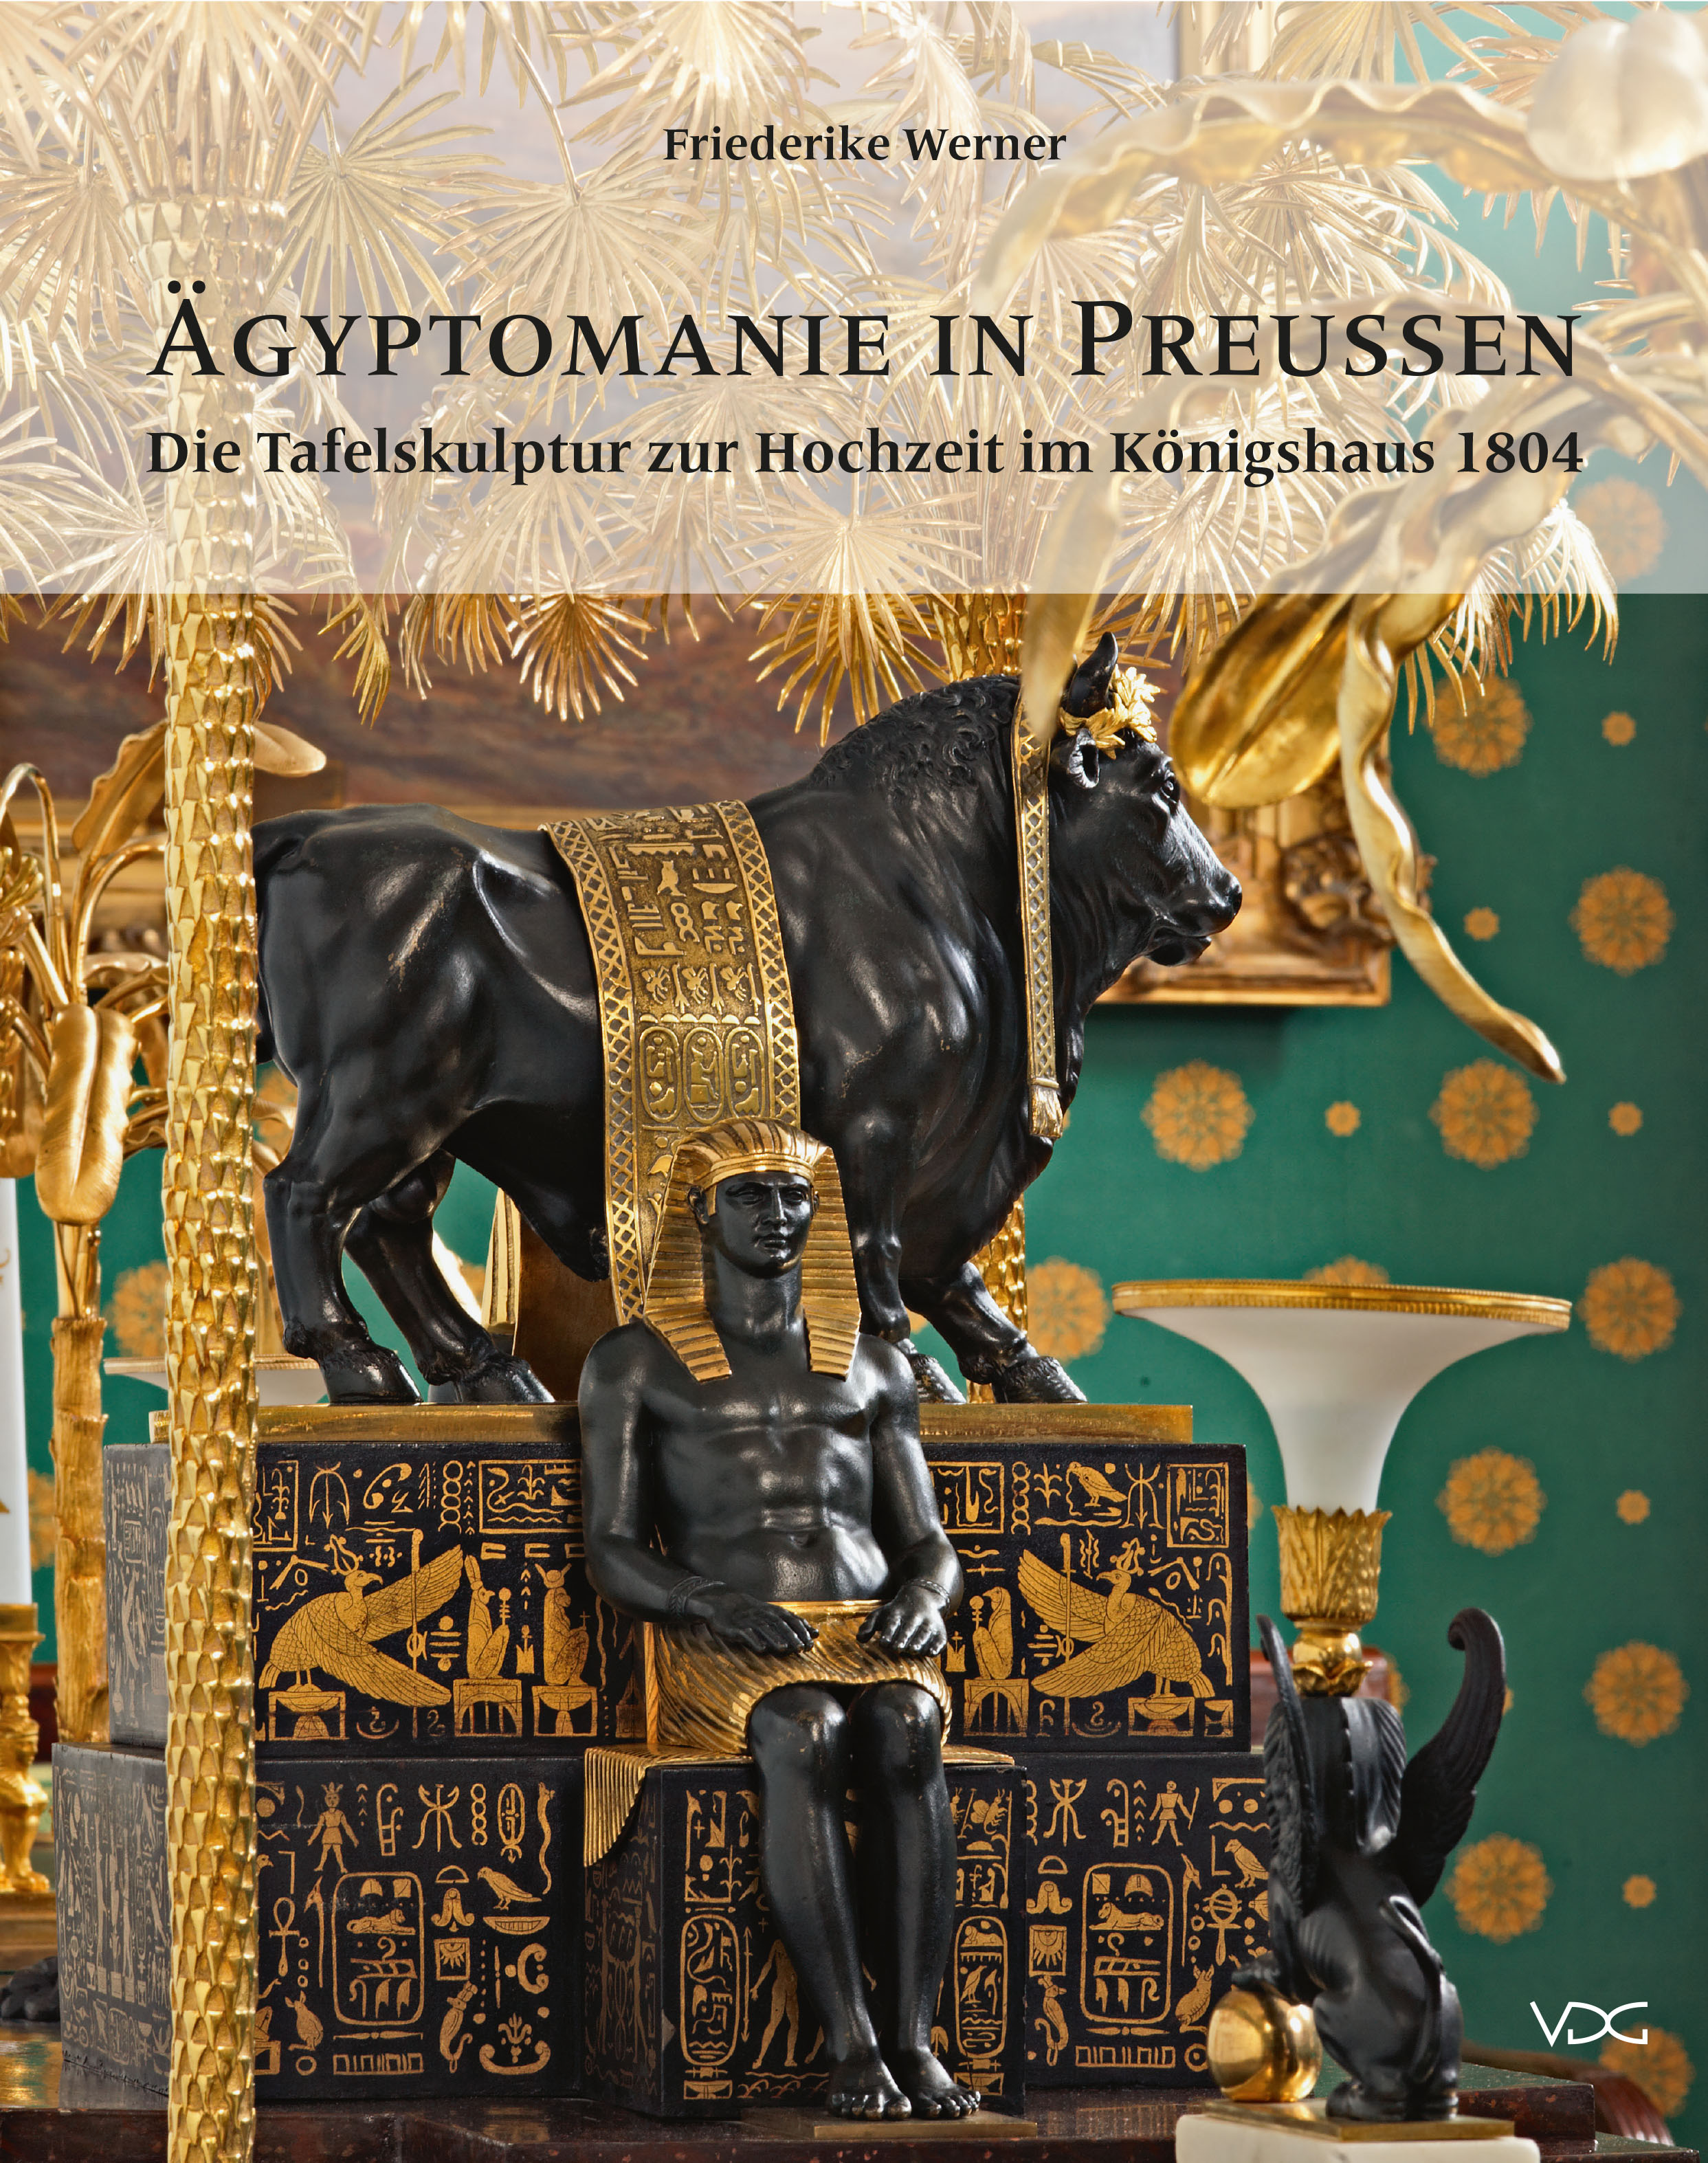 Ägyptomanie in Preußen © Cover VDG